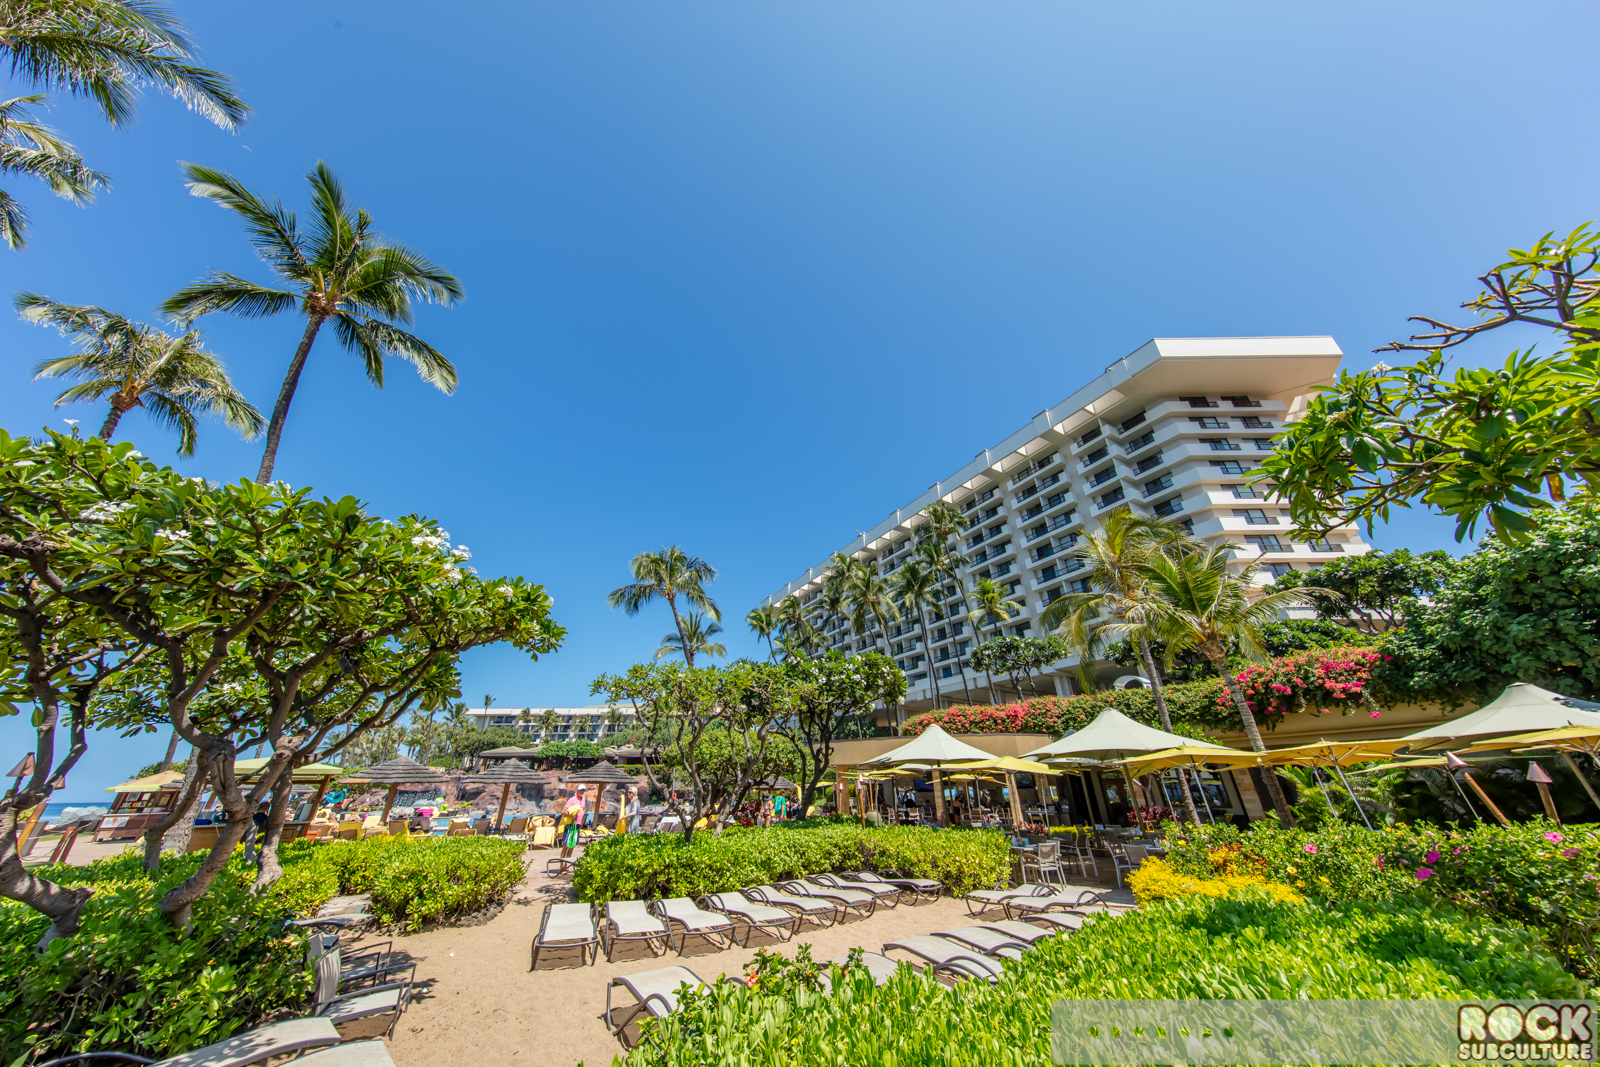 Hotel Resort Review Hyatt Regency Maui Resort Amp Spa